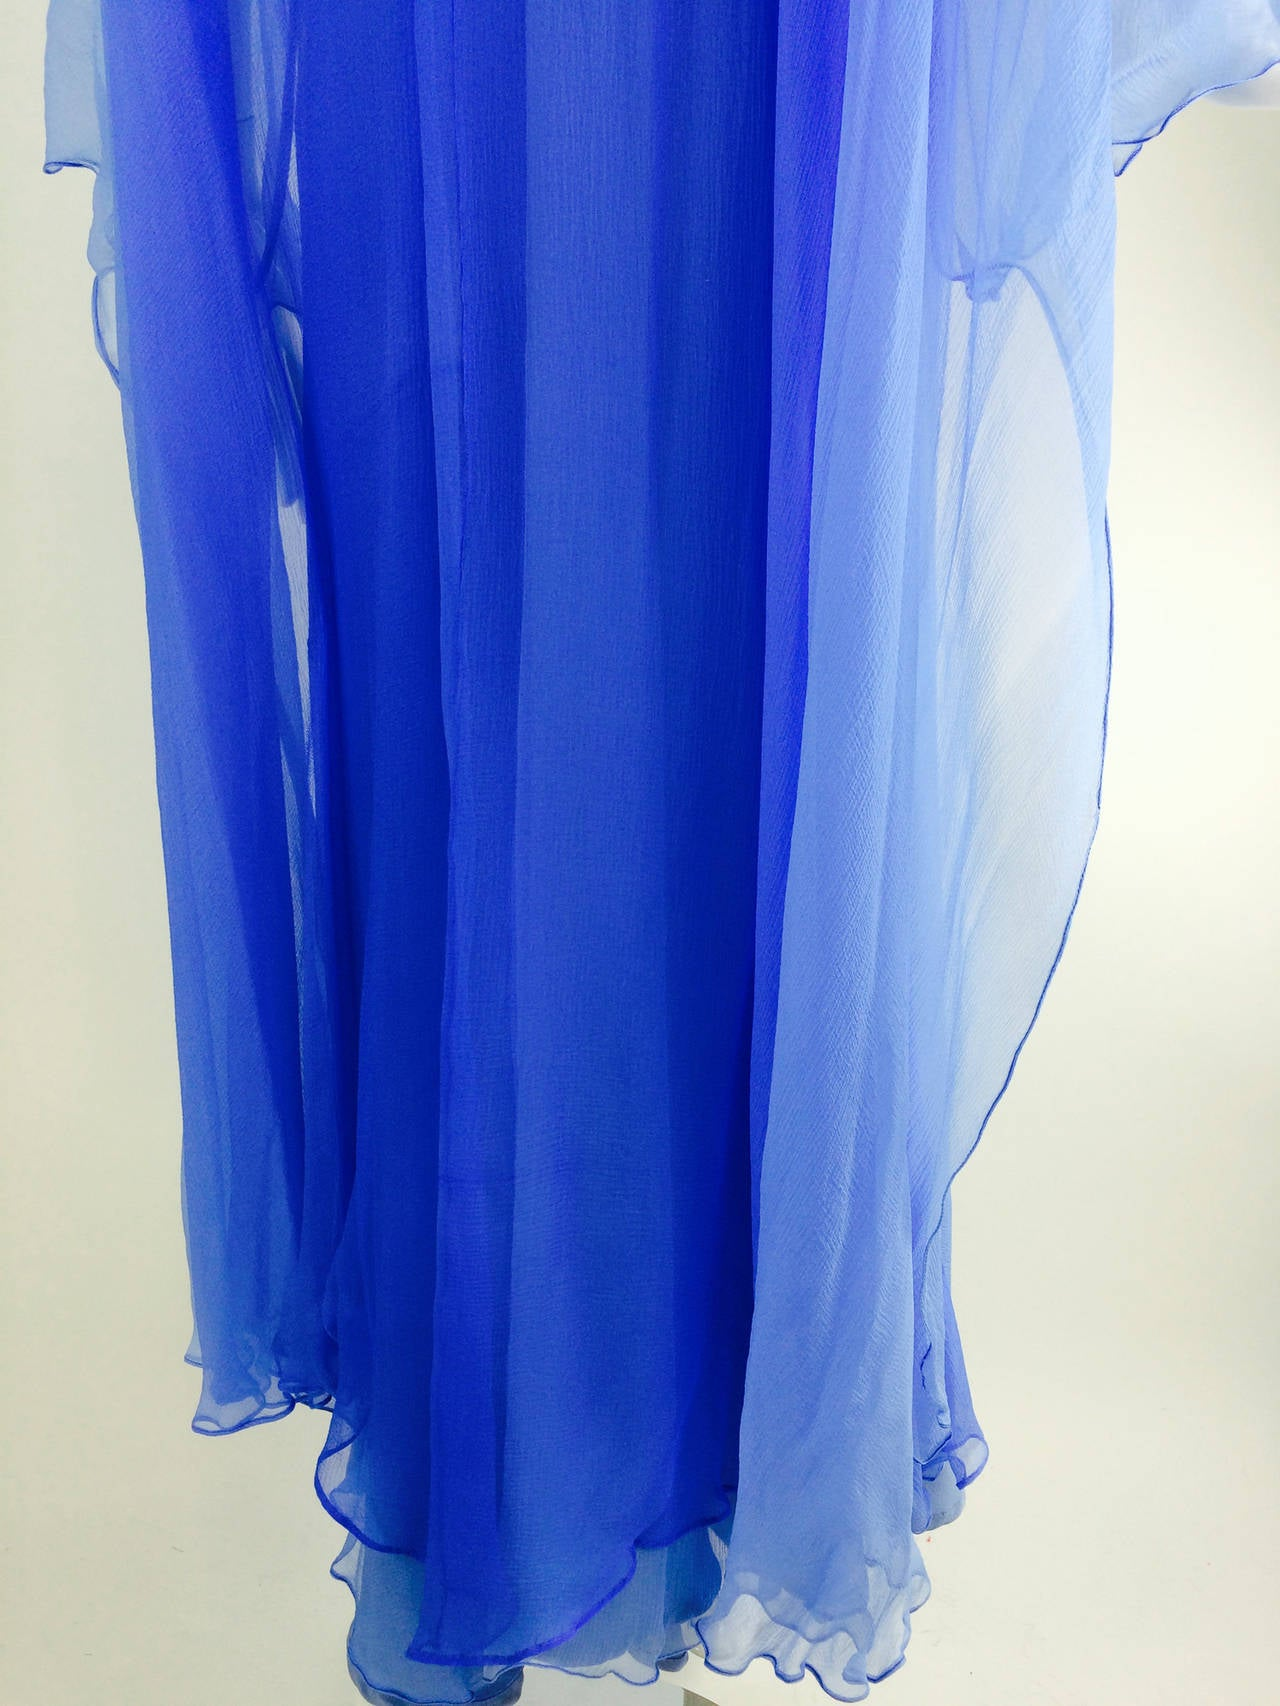 Fiandaca Cerulean Blue tonal silk chiffon gown 1990s For Sale 1